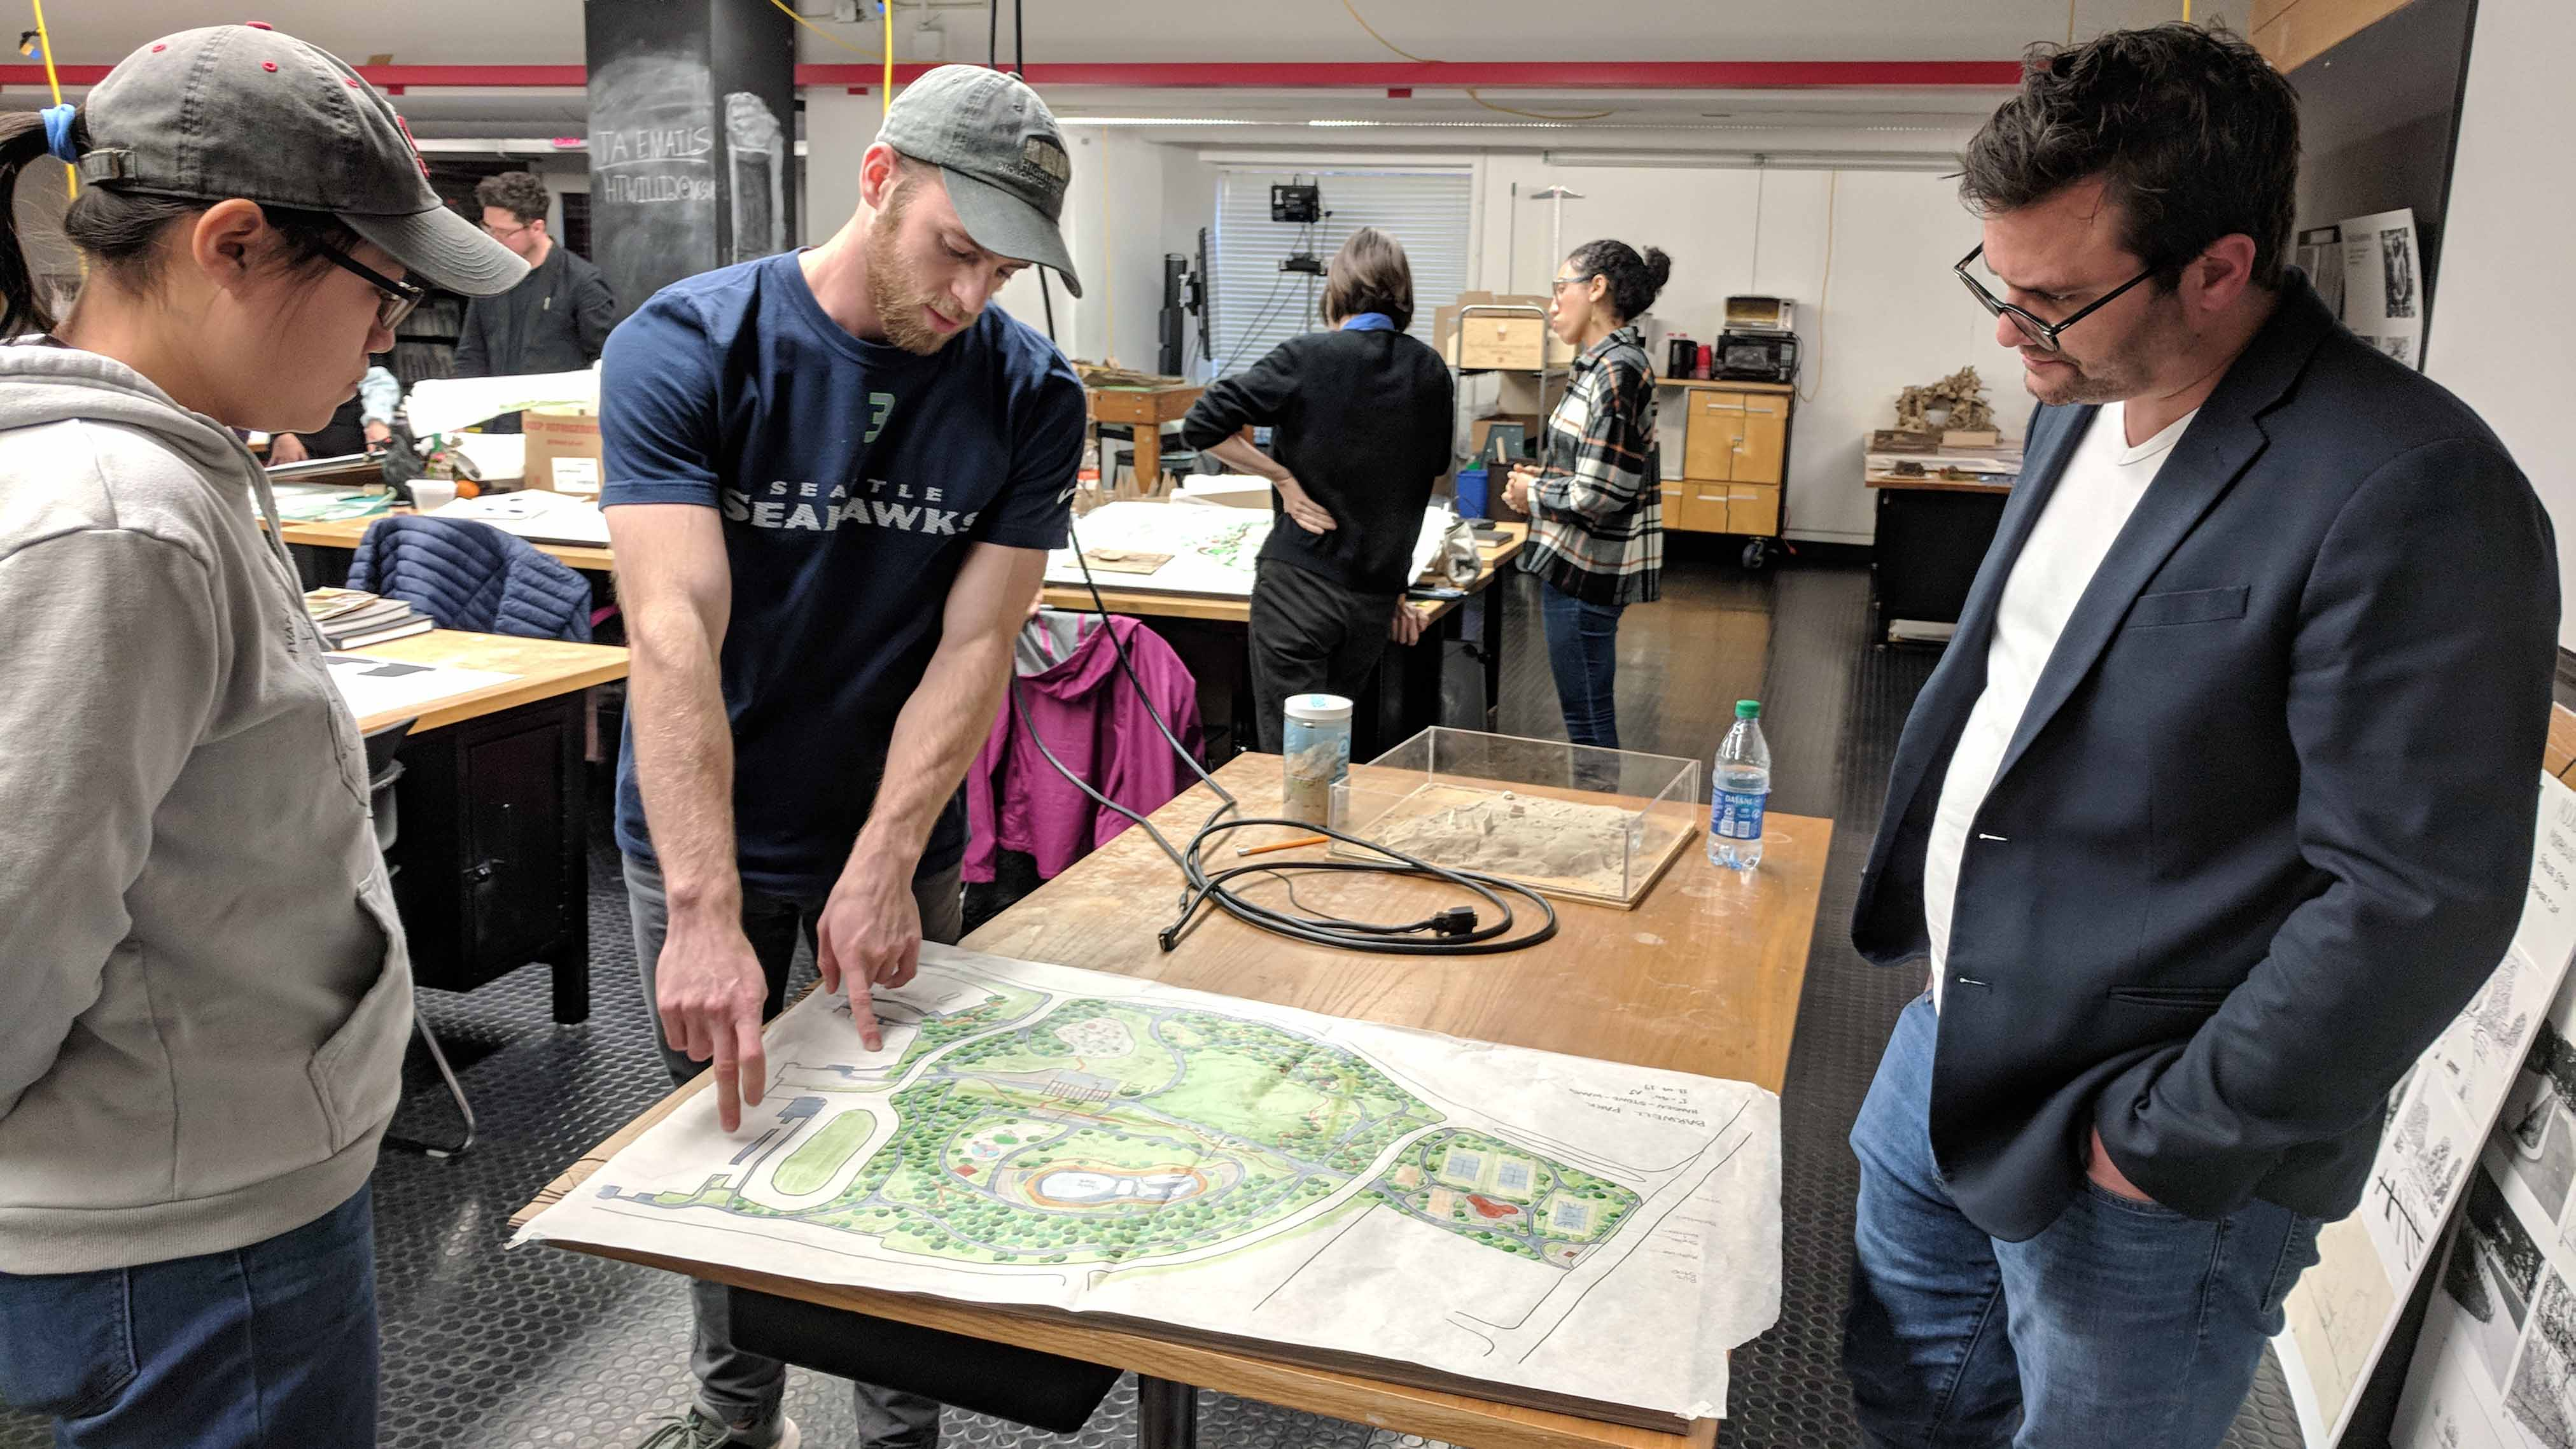 OJB Shares Cary Project and Connects with Landscape Architecture Students Over Park Project